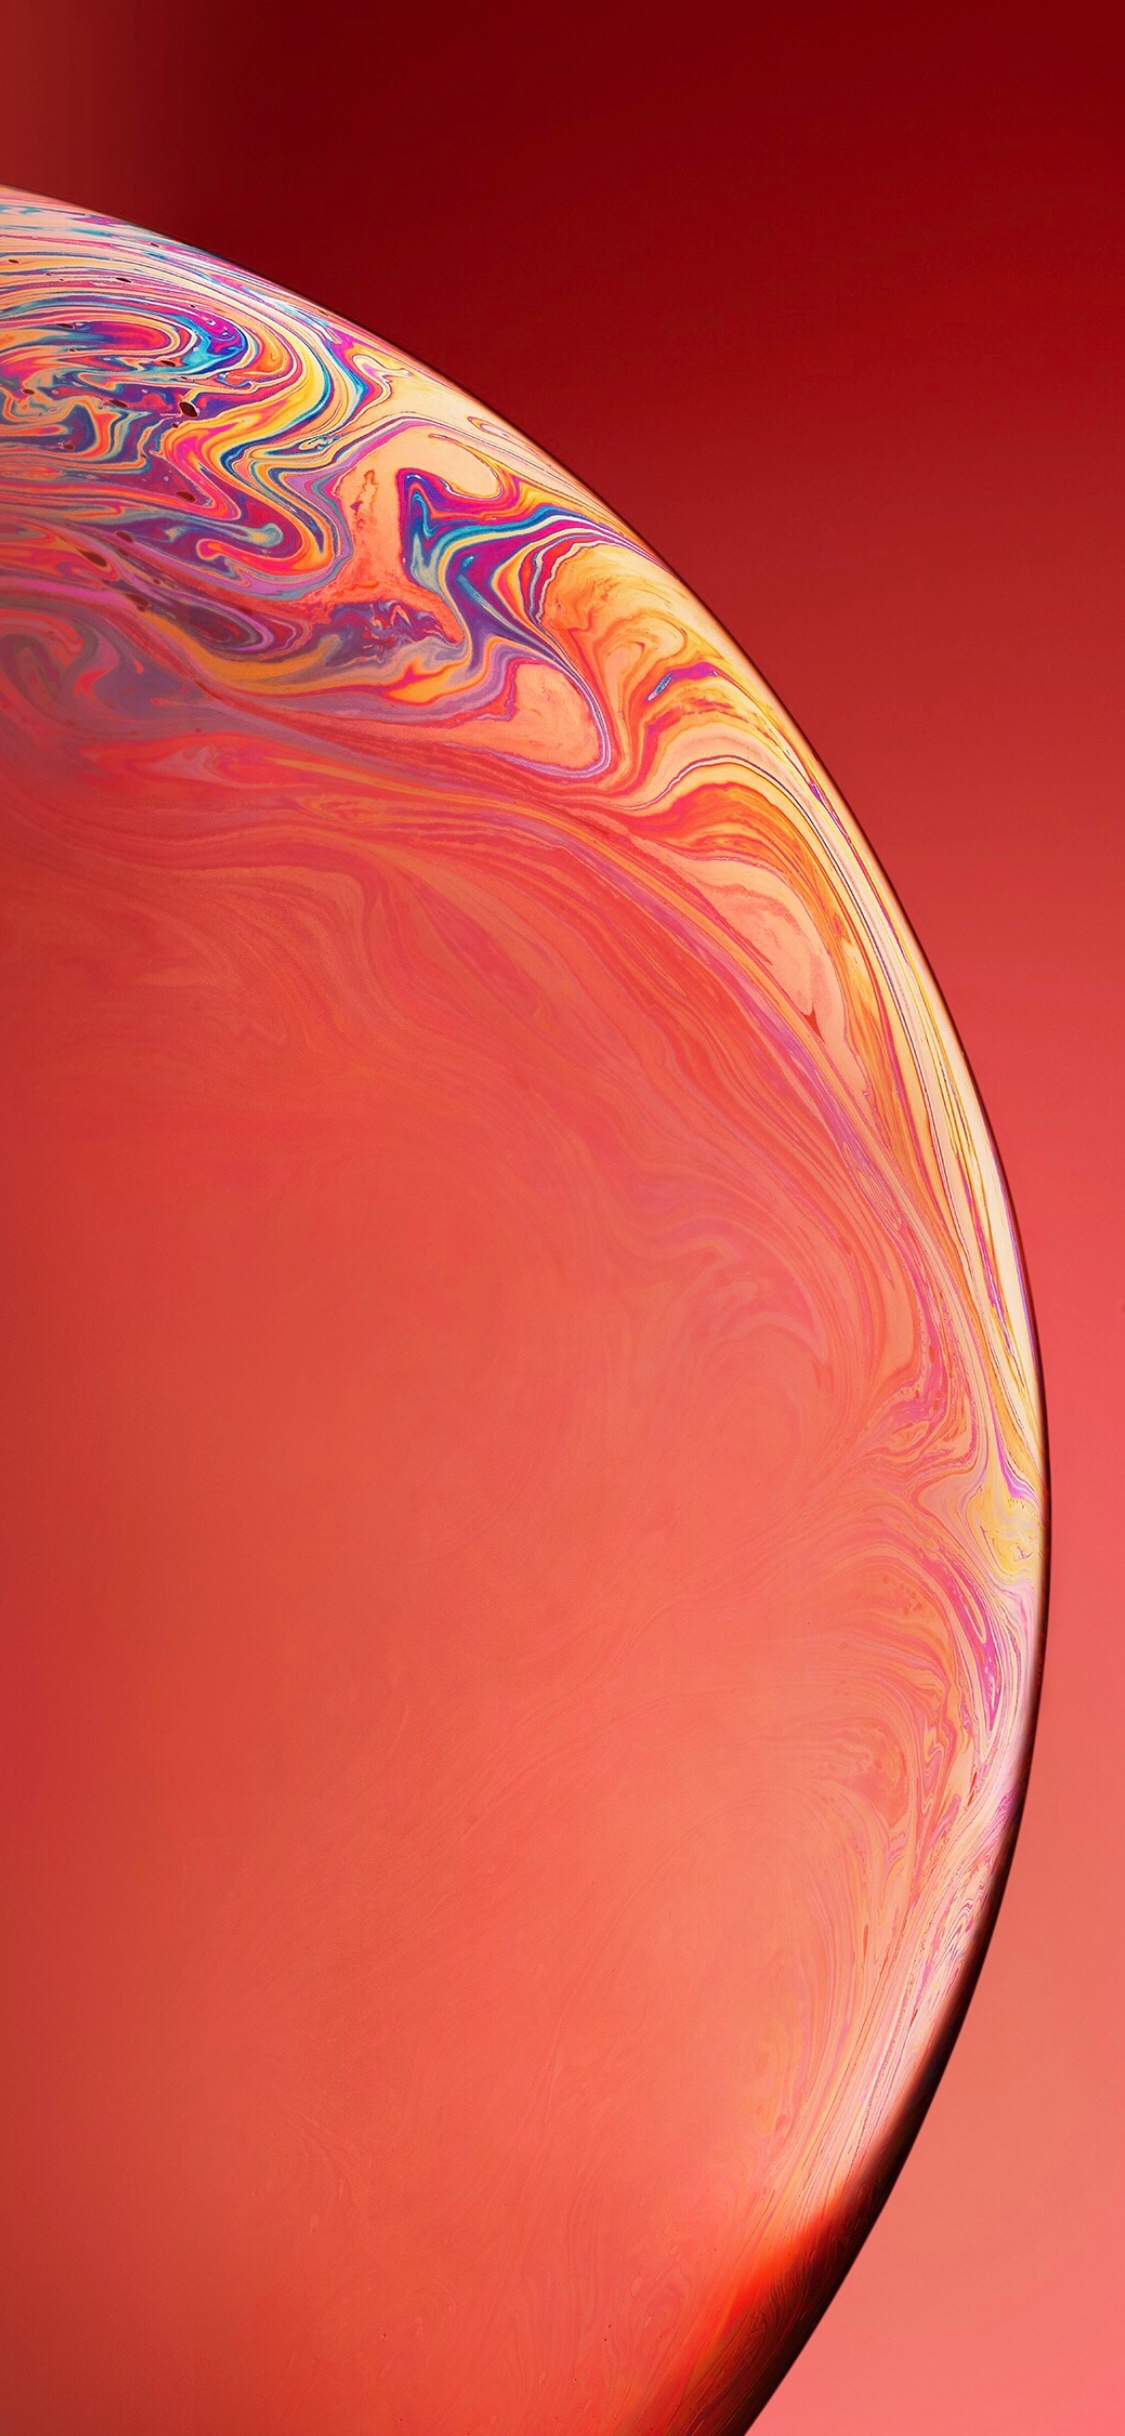 Check Out These 15 Beautiful Iphone Xs And Iphone Xr Wallpapers